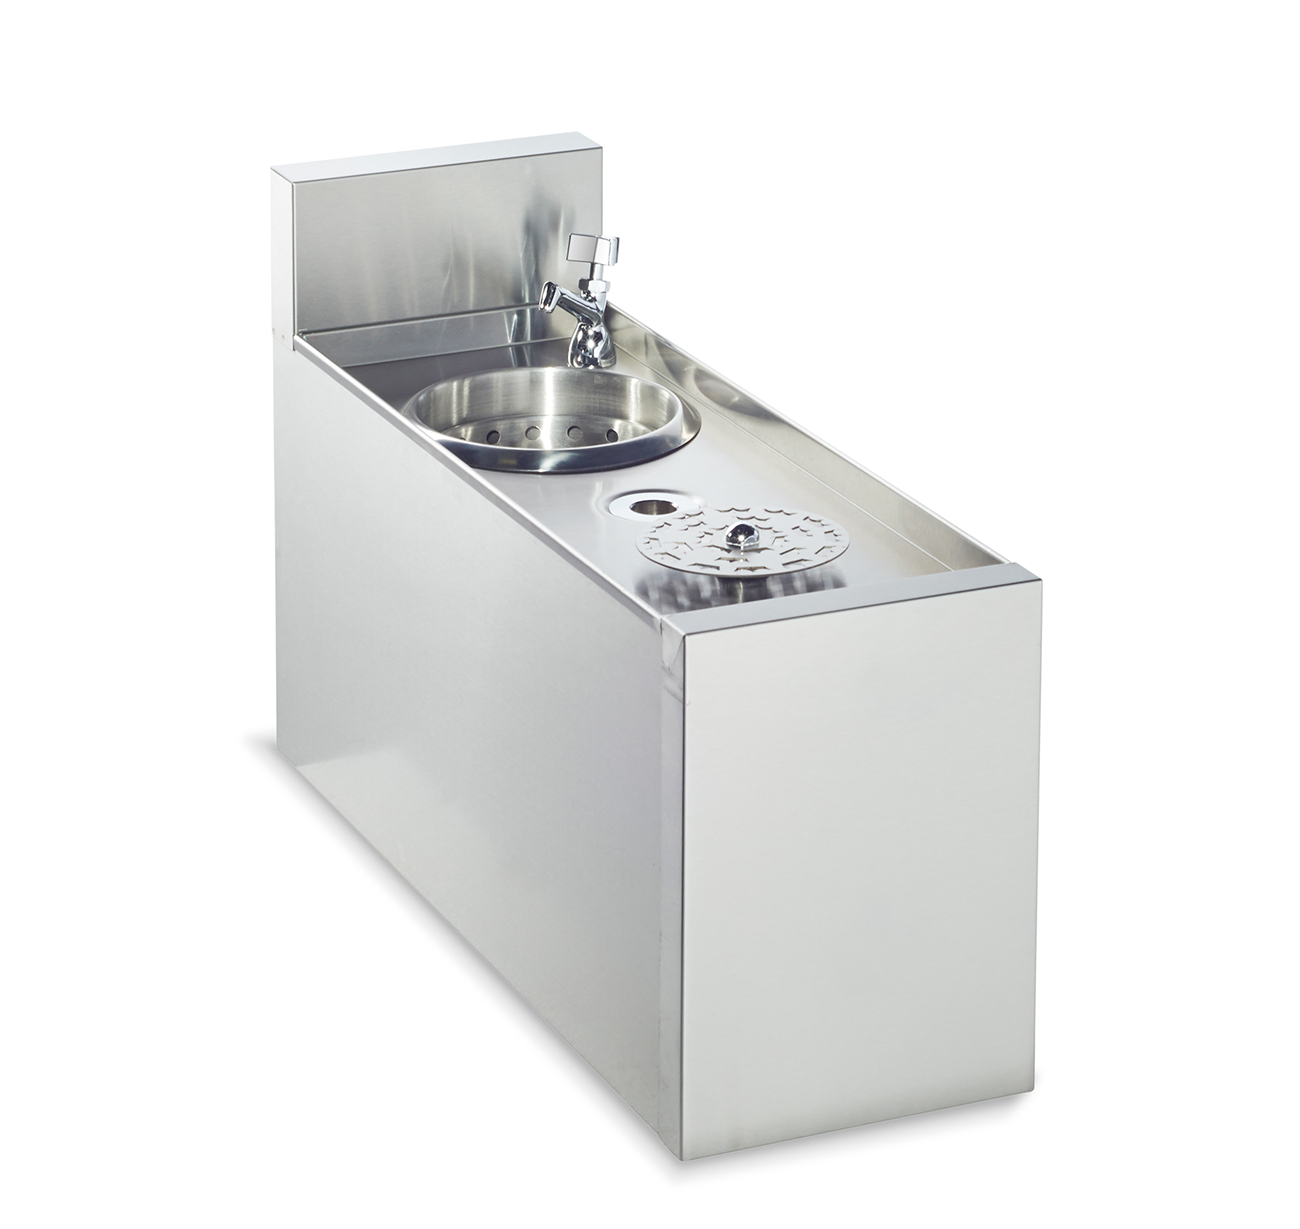 Krowne Metal KR18-MC8 underbar sink units